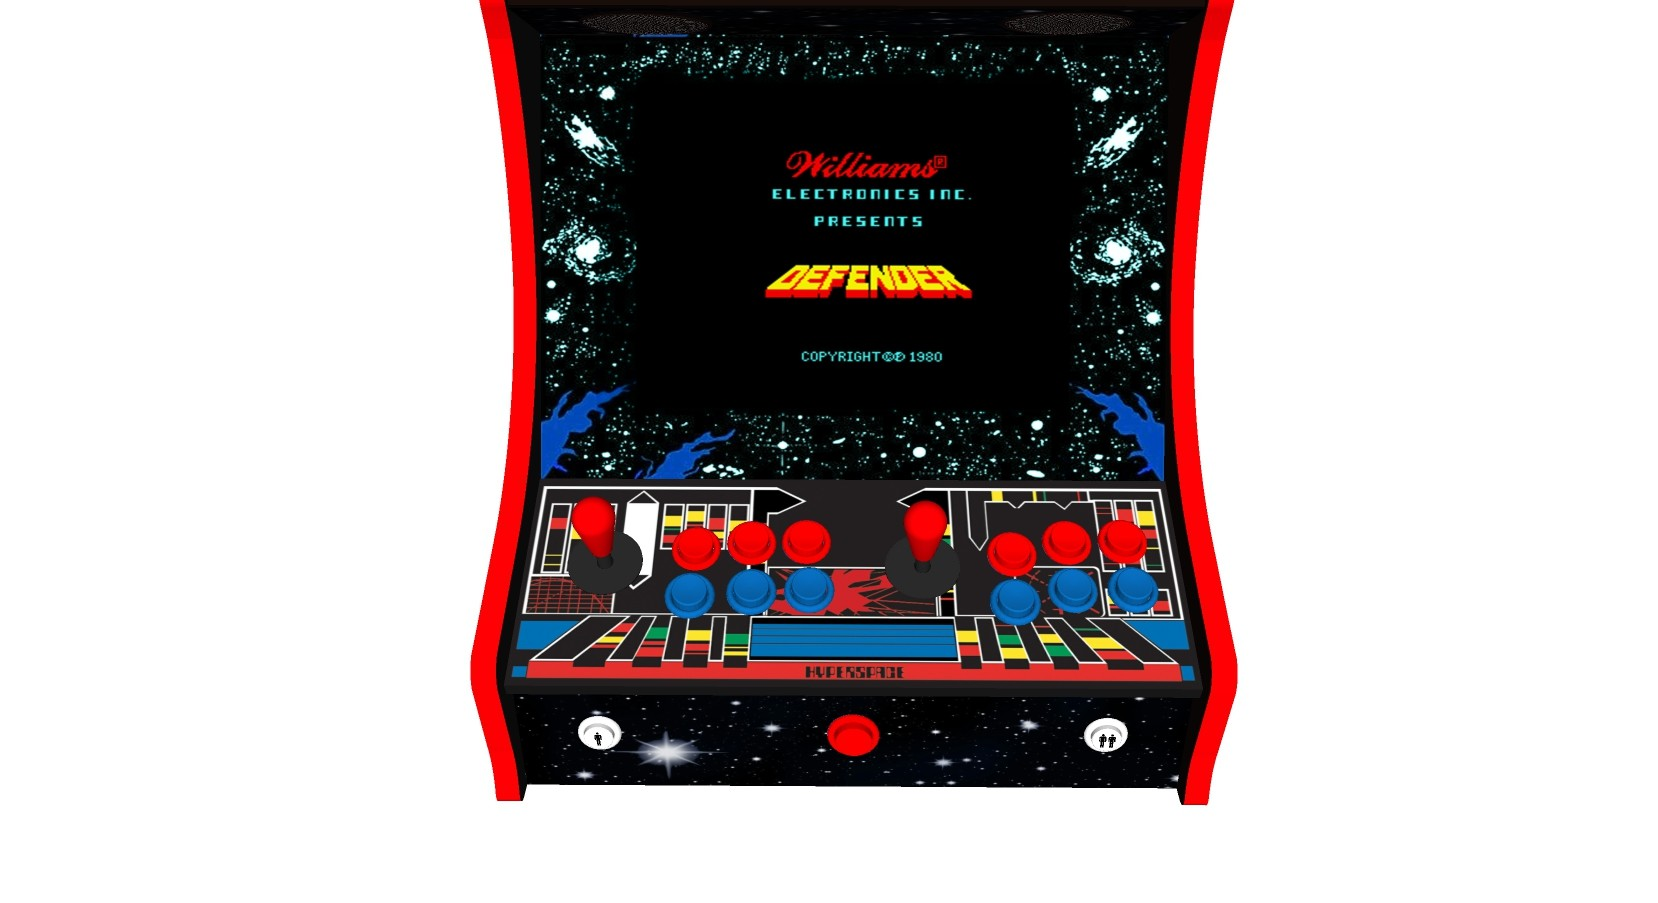 Classic Bartop Arcade Machine with 619 Games Defender theme - Buttons